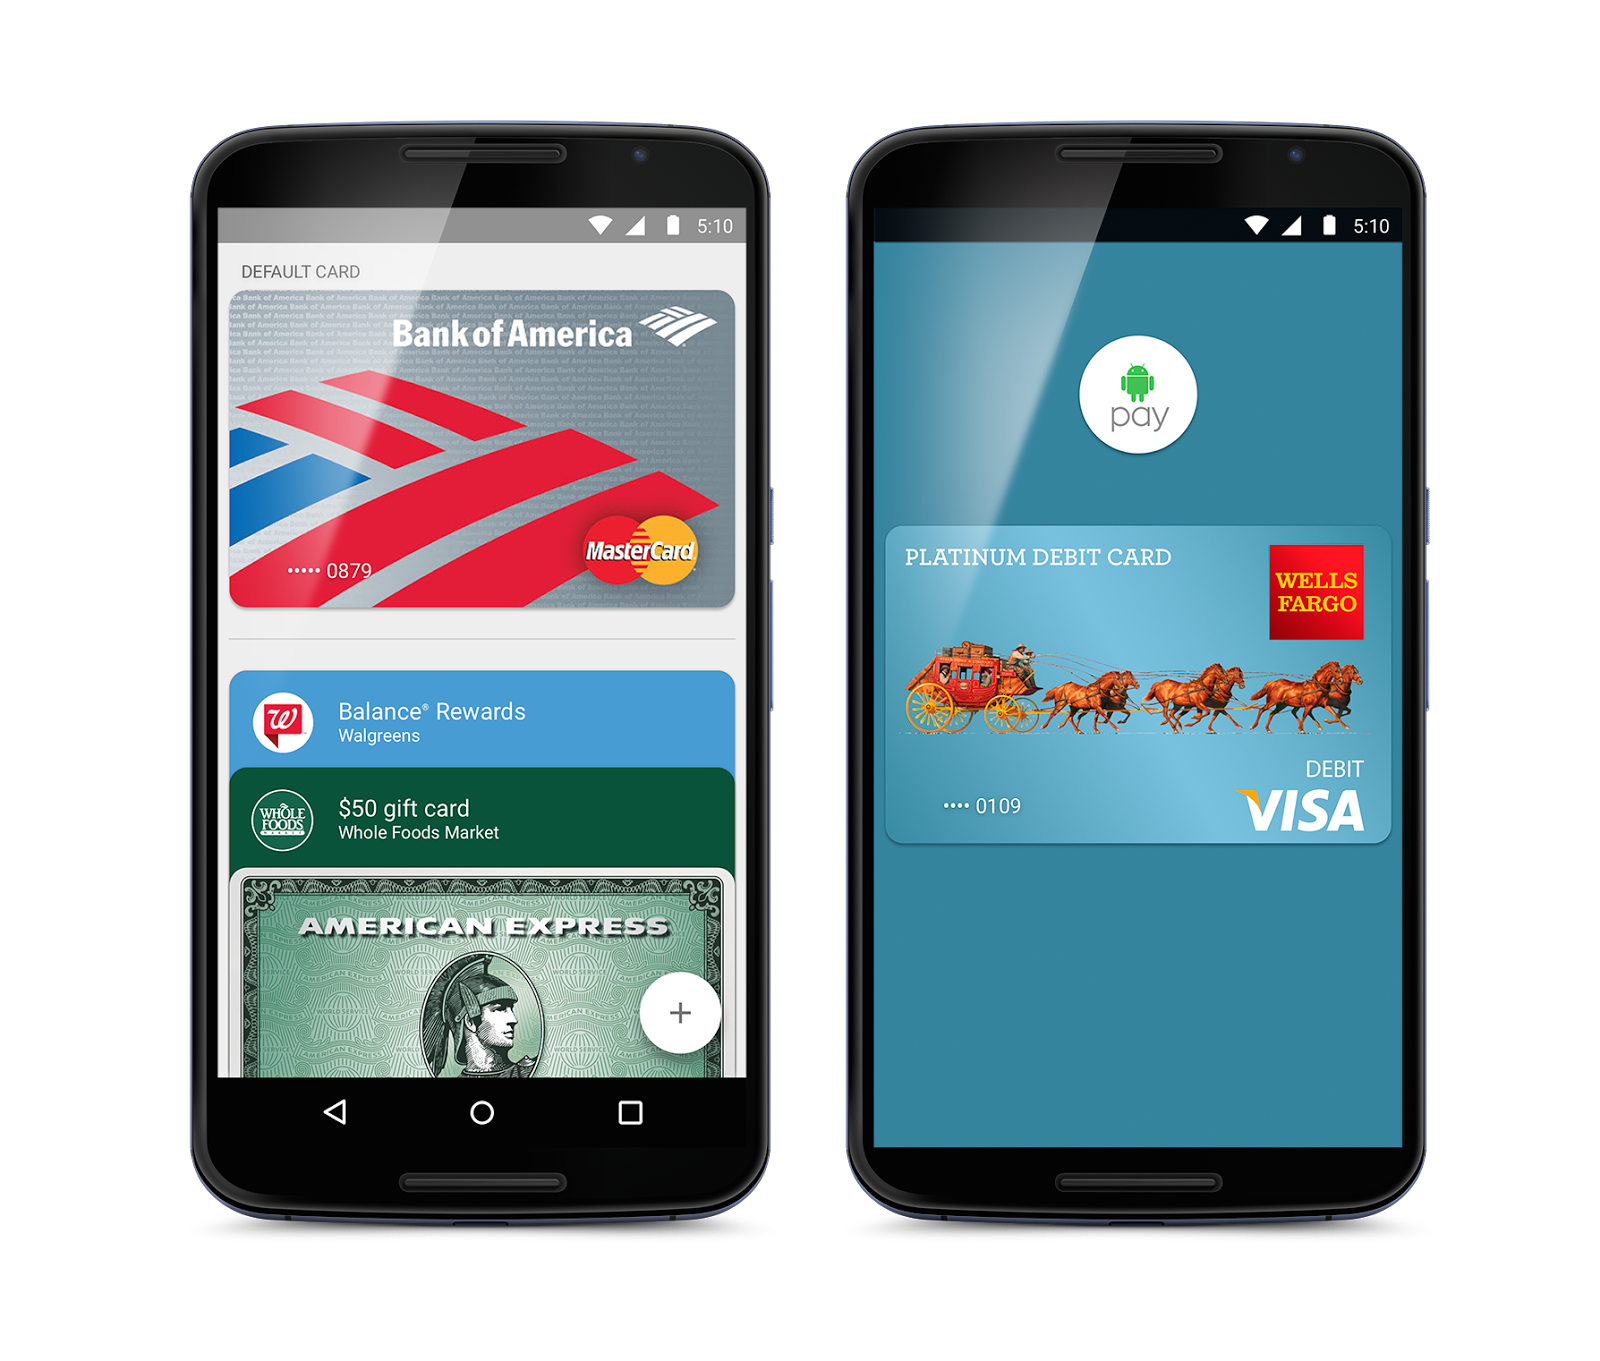 google-takes-the-fight-to-apple-pay-today-image-cultofandroidcomwp-contentuploads201509Android-Pay-png